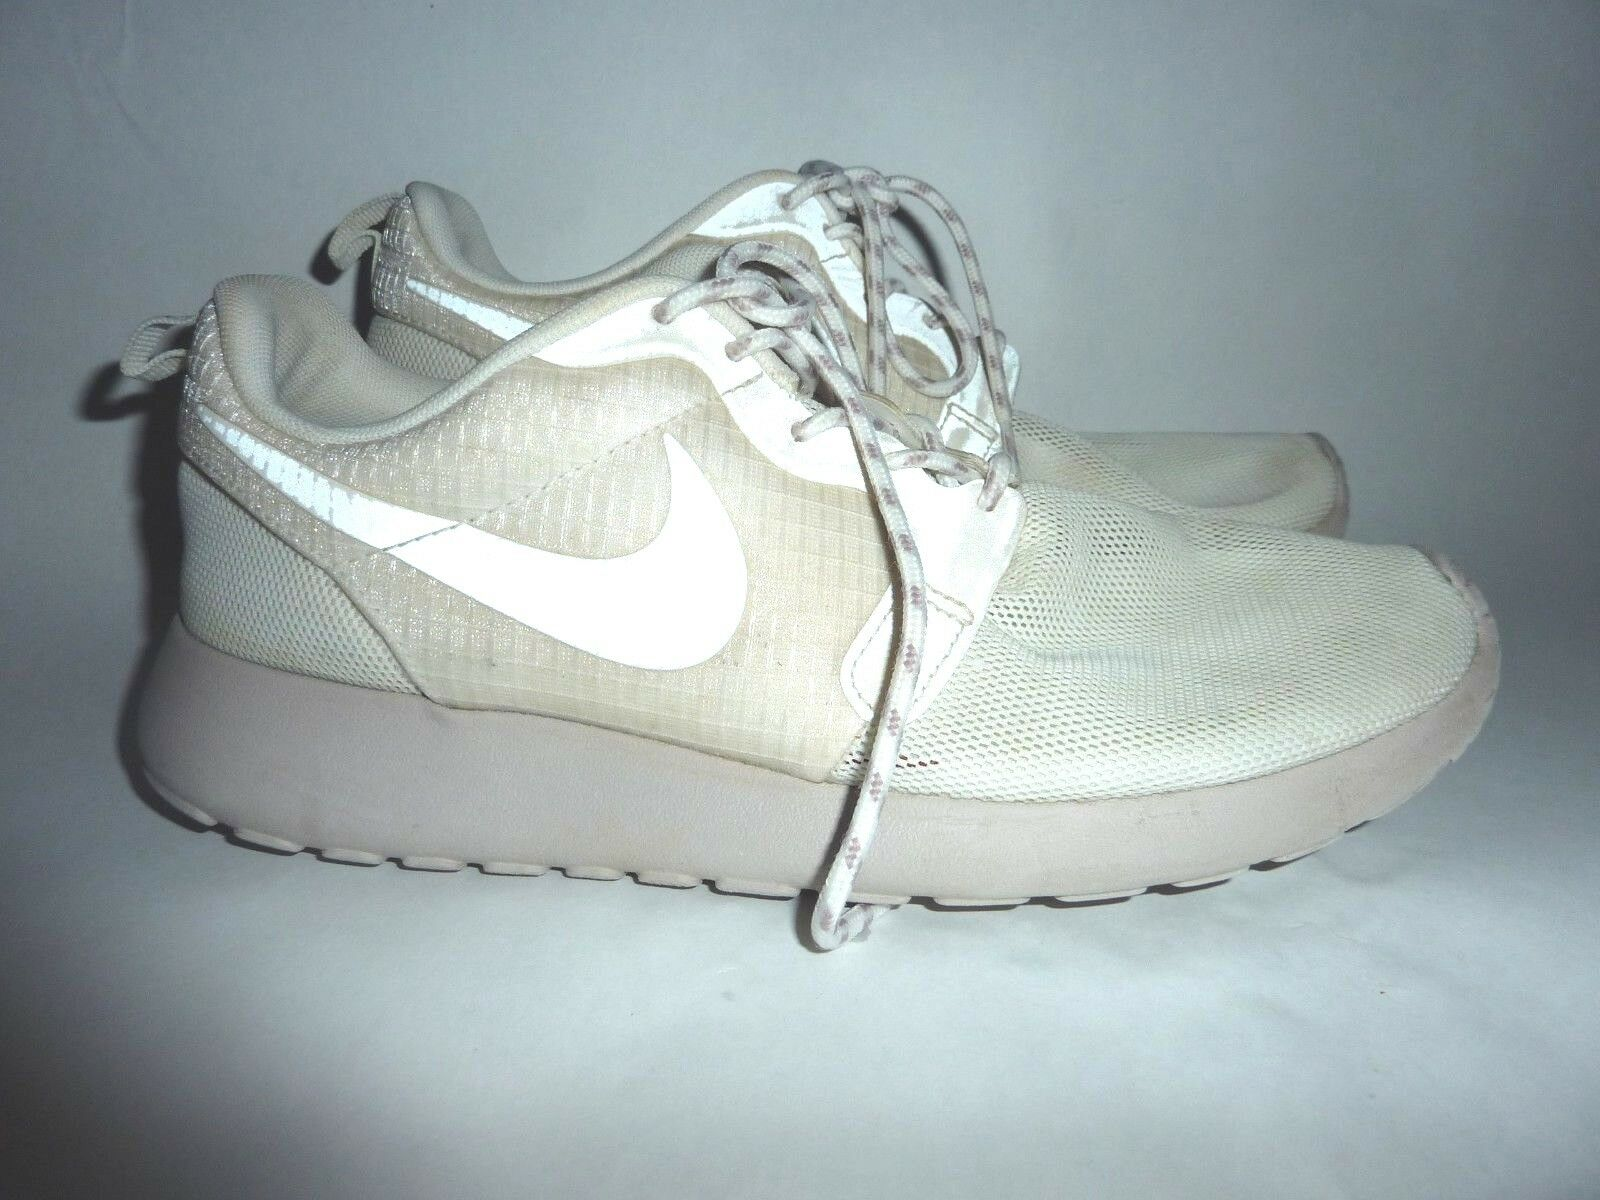 Nike runners women's size US 7.5 Wild casual shoes